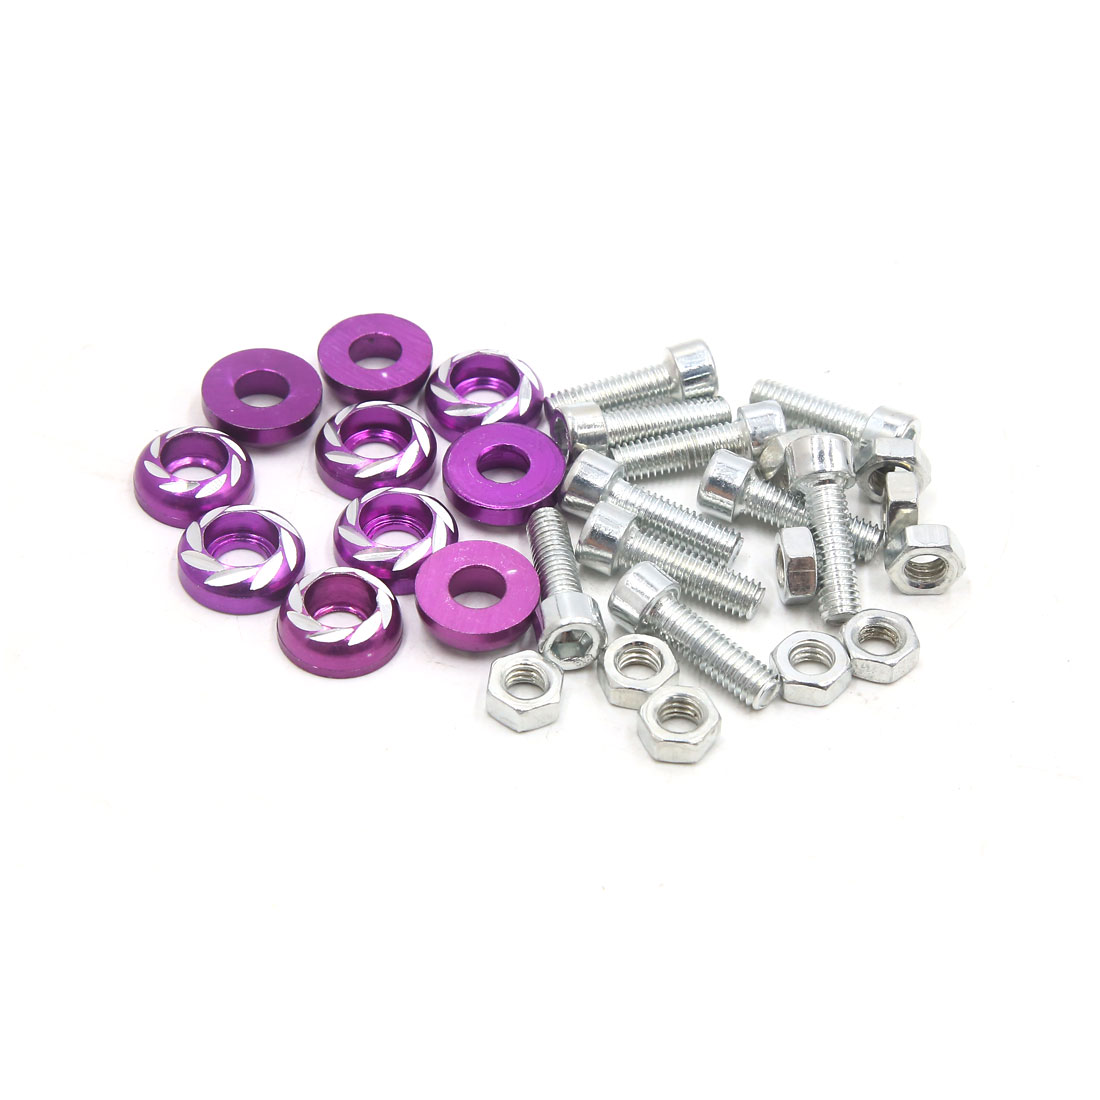 10Pcs M6 x 20mm Carved Style Motorcycle License Plate Frame Bolts Screws Purple